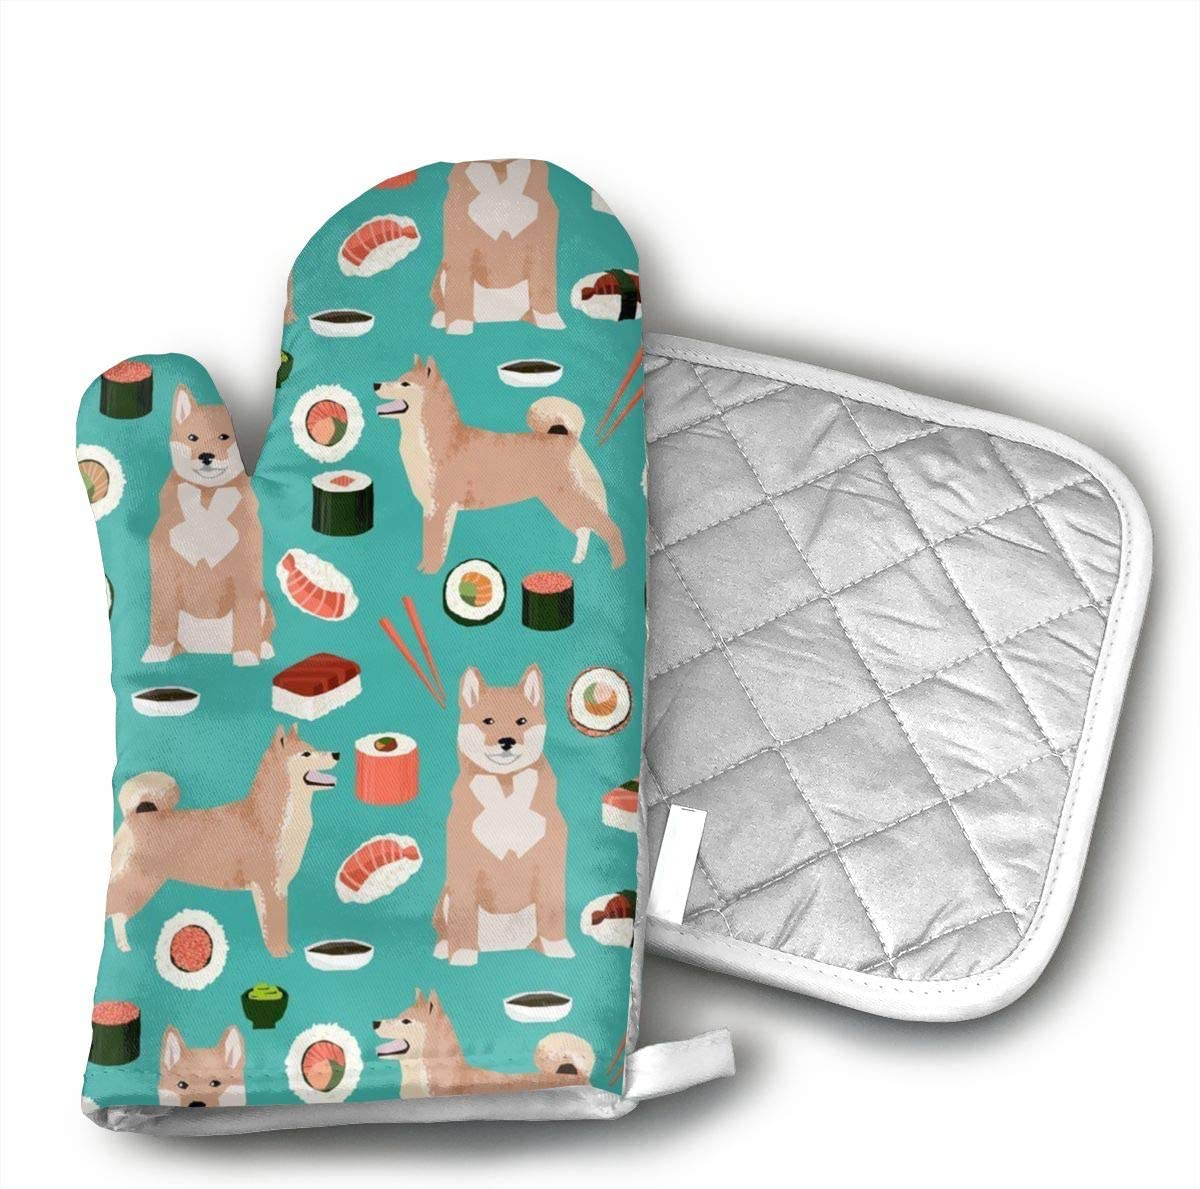 Wiqo9 Shiba Inu and Sushi Novelty Dogs Oven Mitts and Pot Holders Kitchen Mitten Cooking Gloves,Cooking, Baking, BBQ.